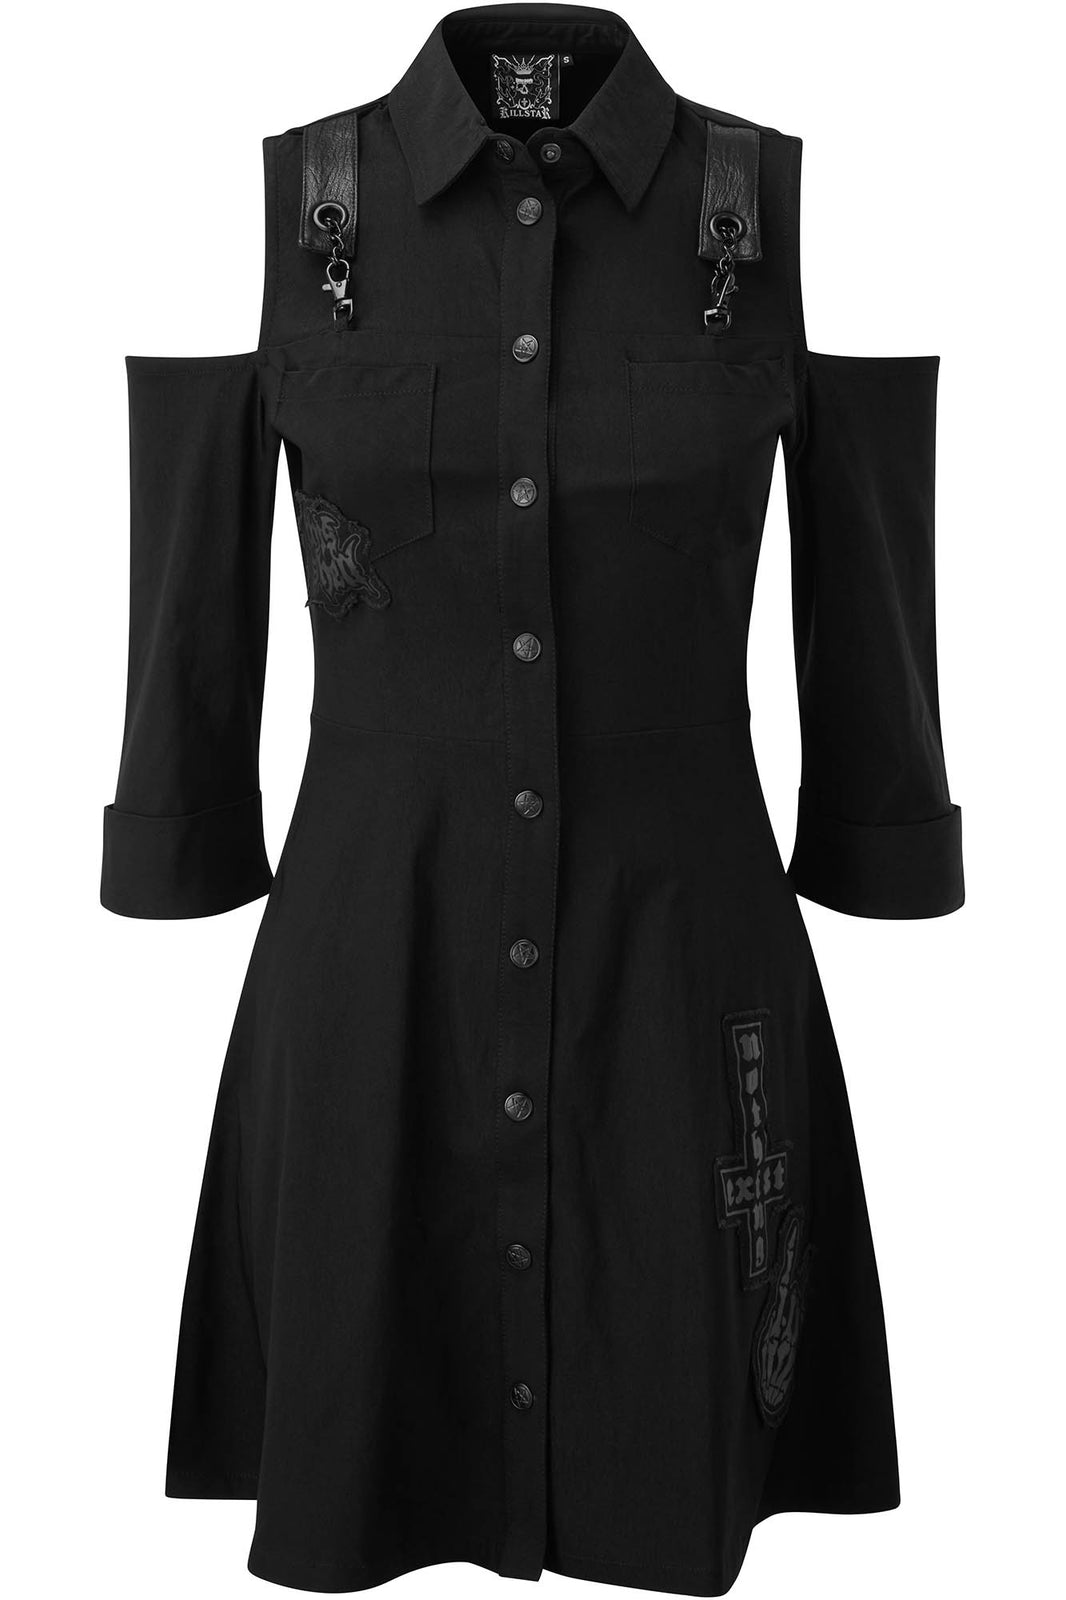 Paranormal Shirt-Dress [B]